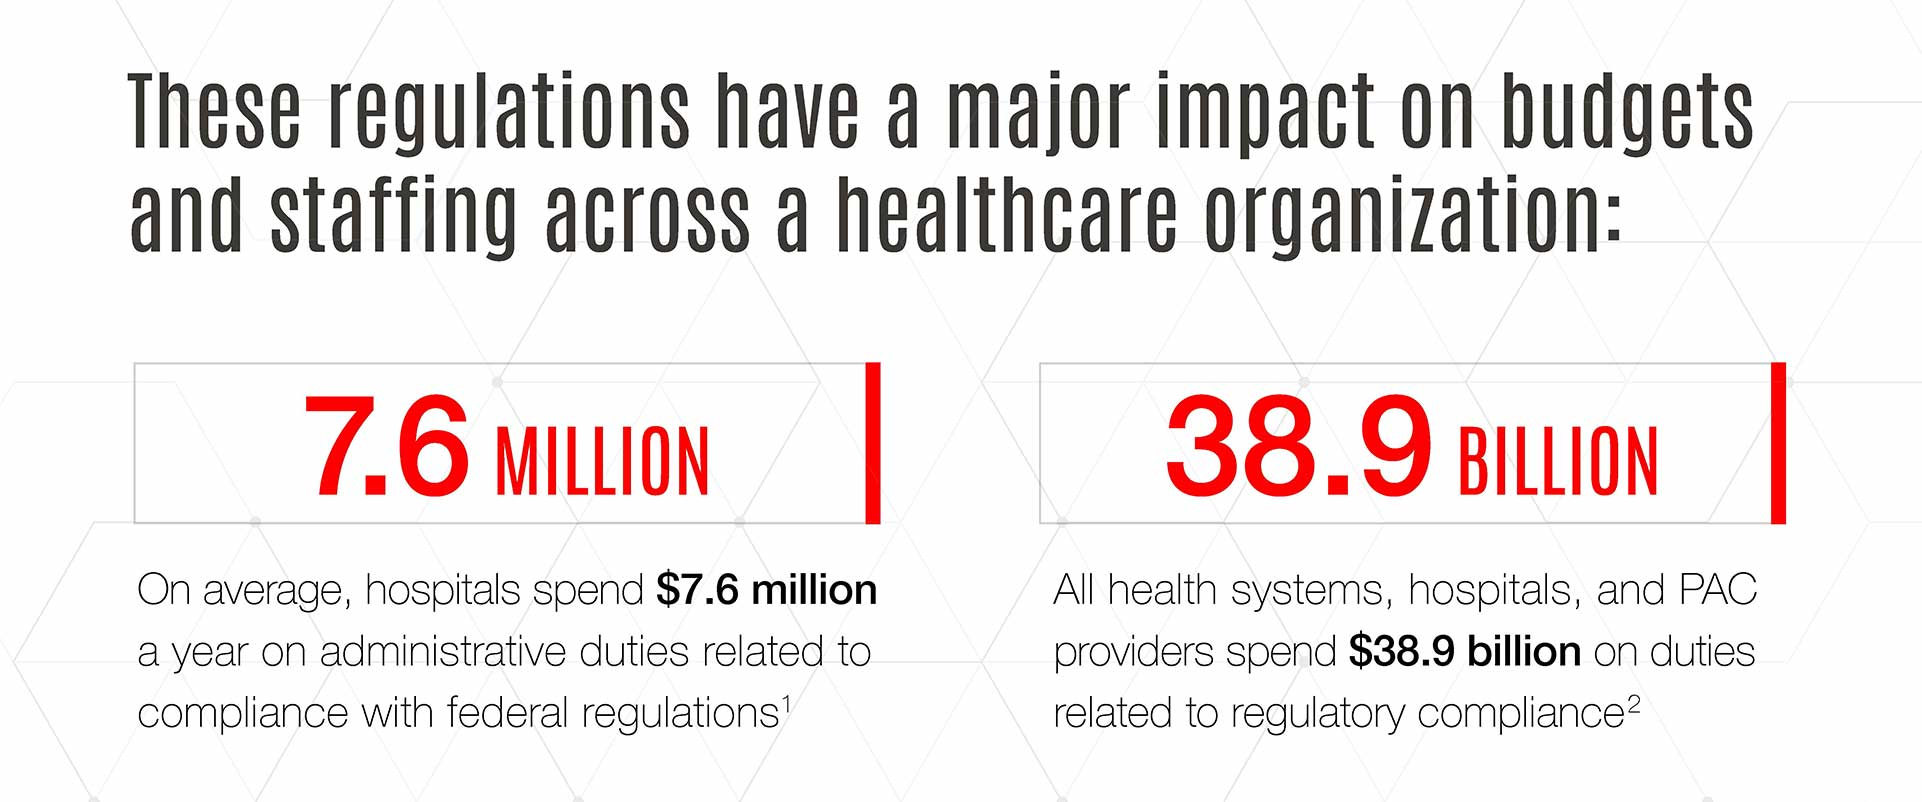 Healthcare regulations impact